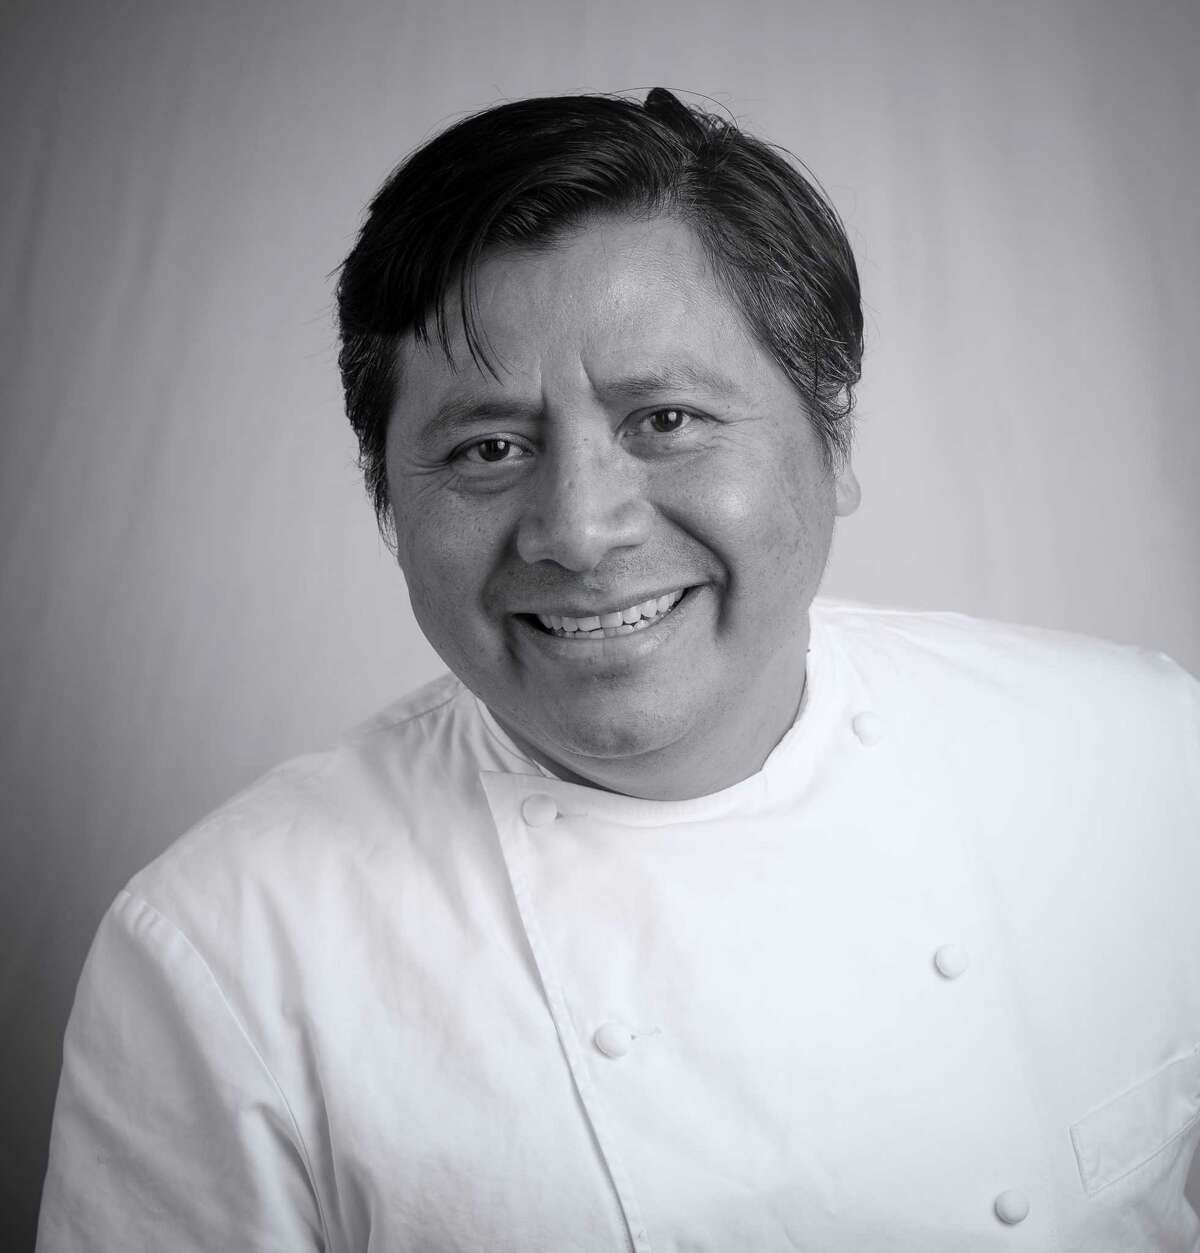 Otto Sanchez is the founder ofMagnol French Baking, specializing in breads made with organic flours, is now open in Spring Branch East, 1500 North Post Oak.